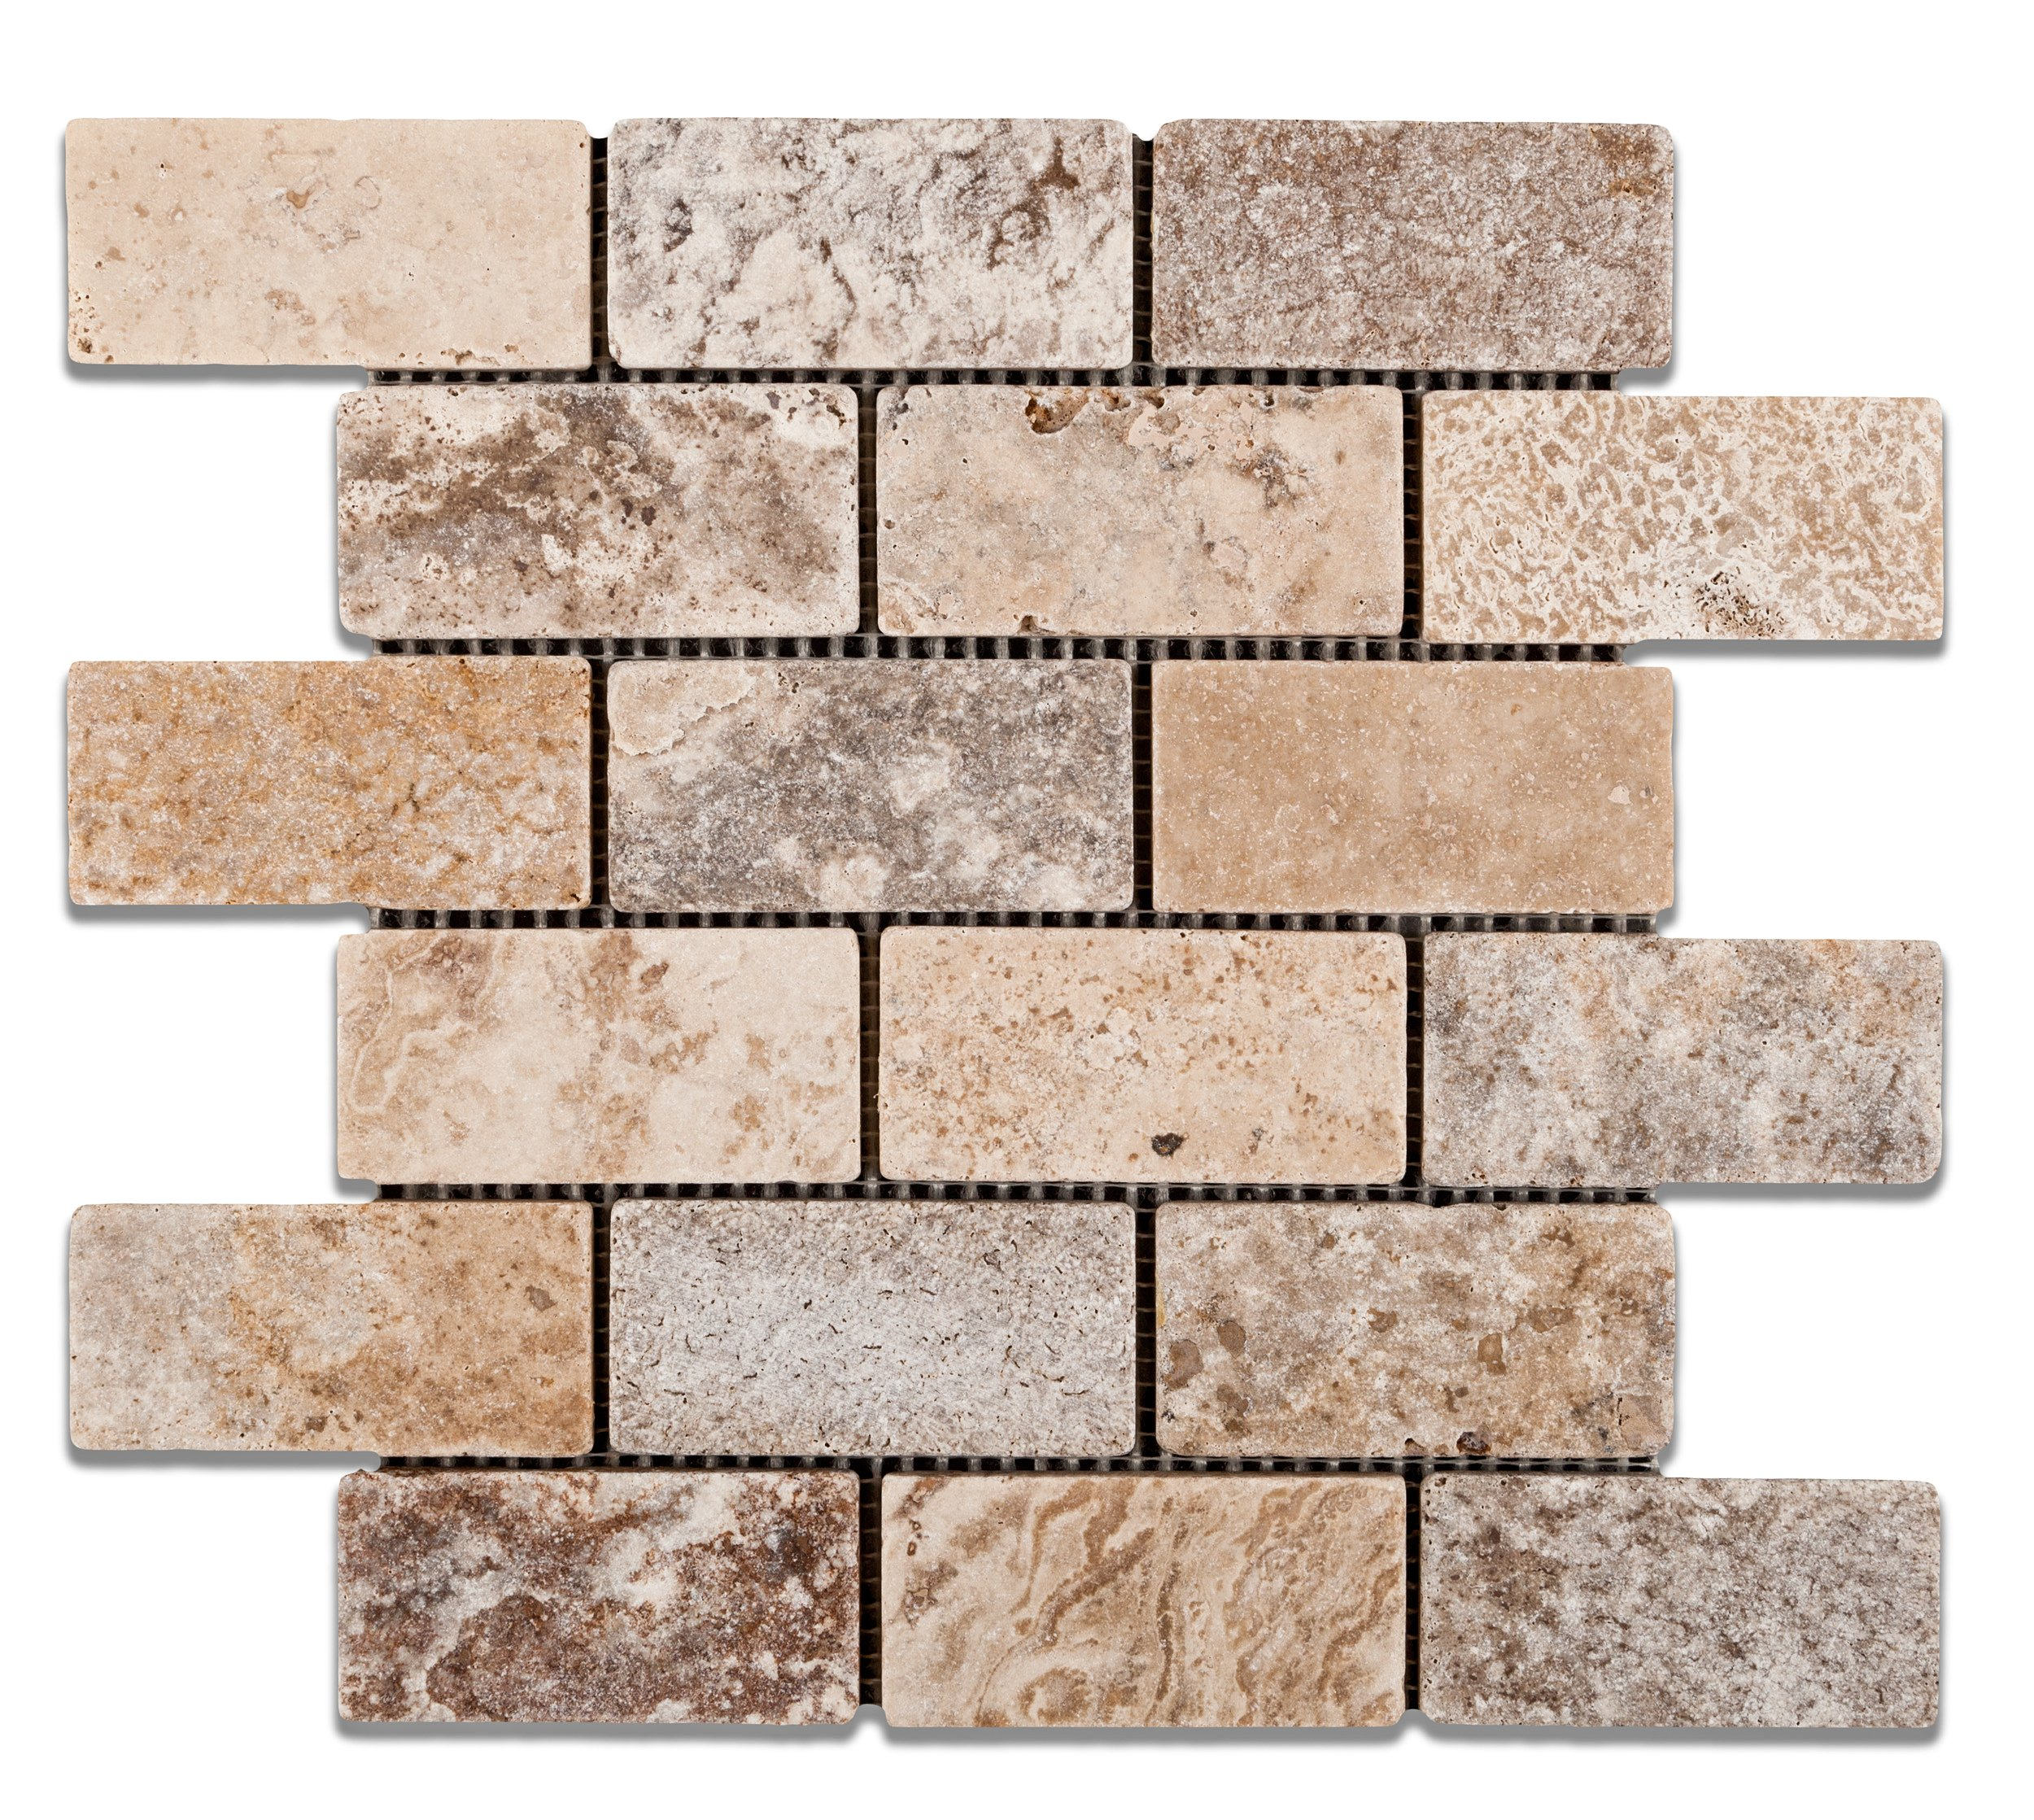 Andean Cream Peruvian Travertine 2 X 4 Tumbled Brick Mosaic Tile - Box of 5 Sheets